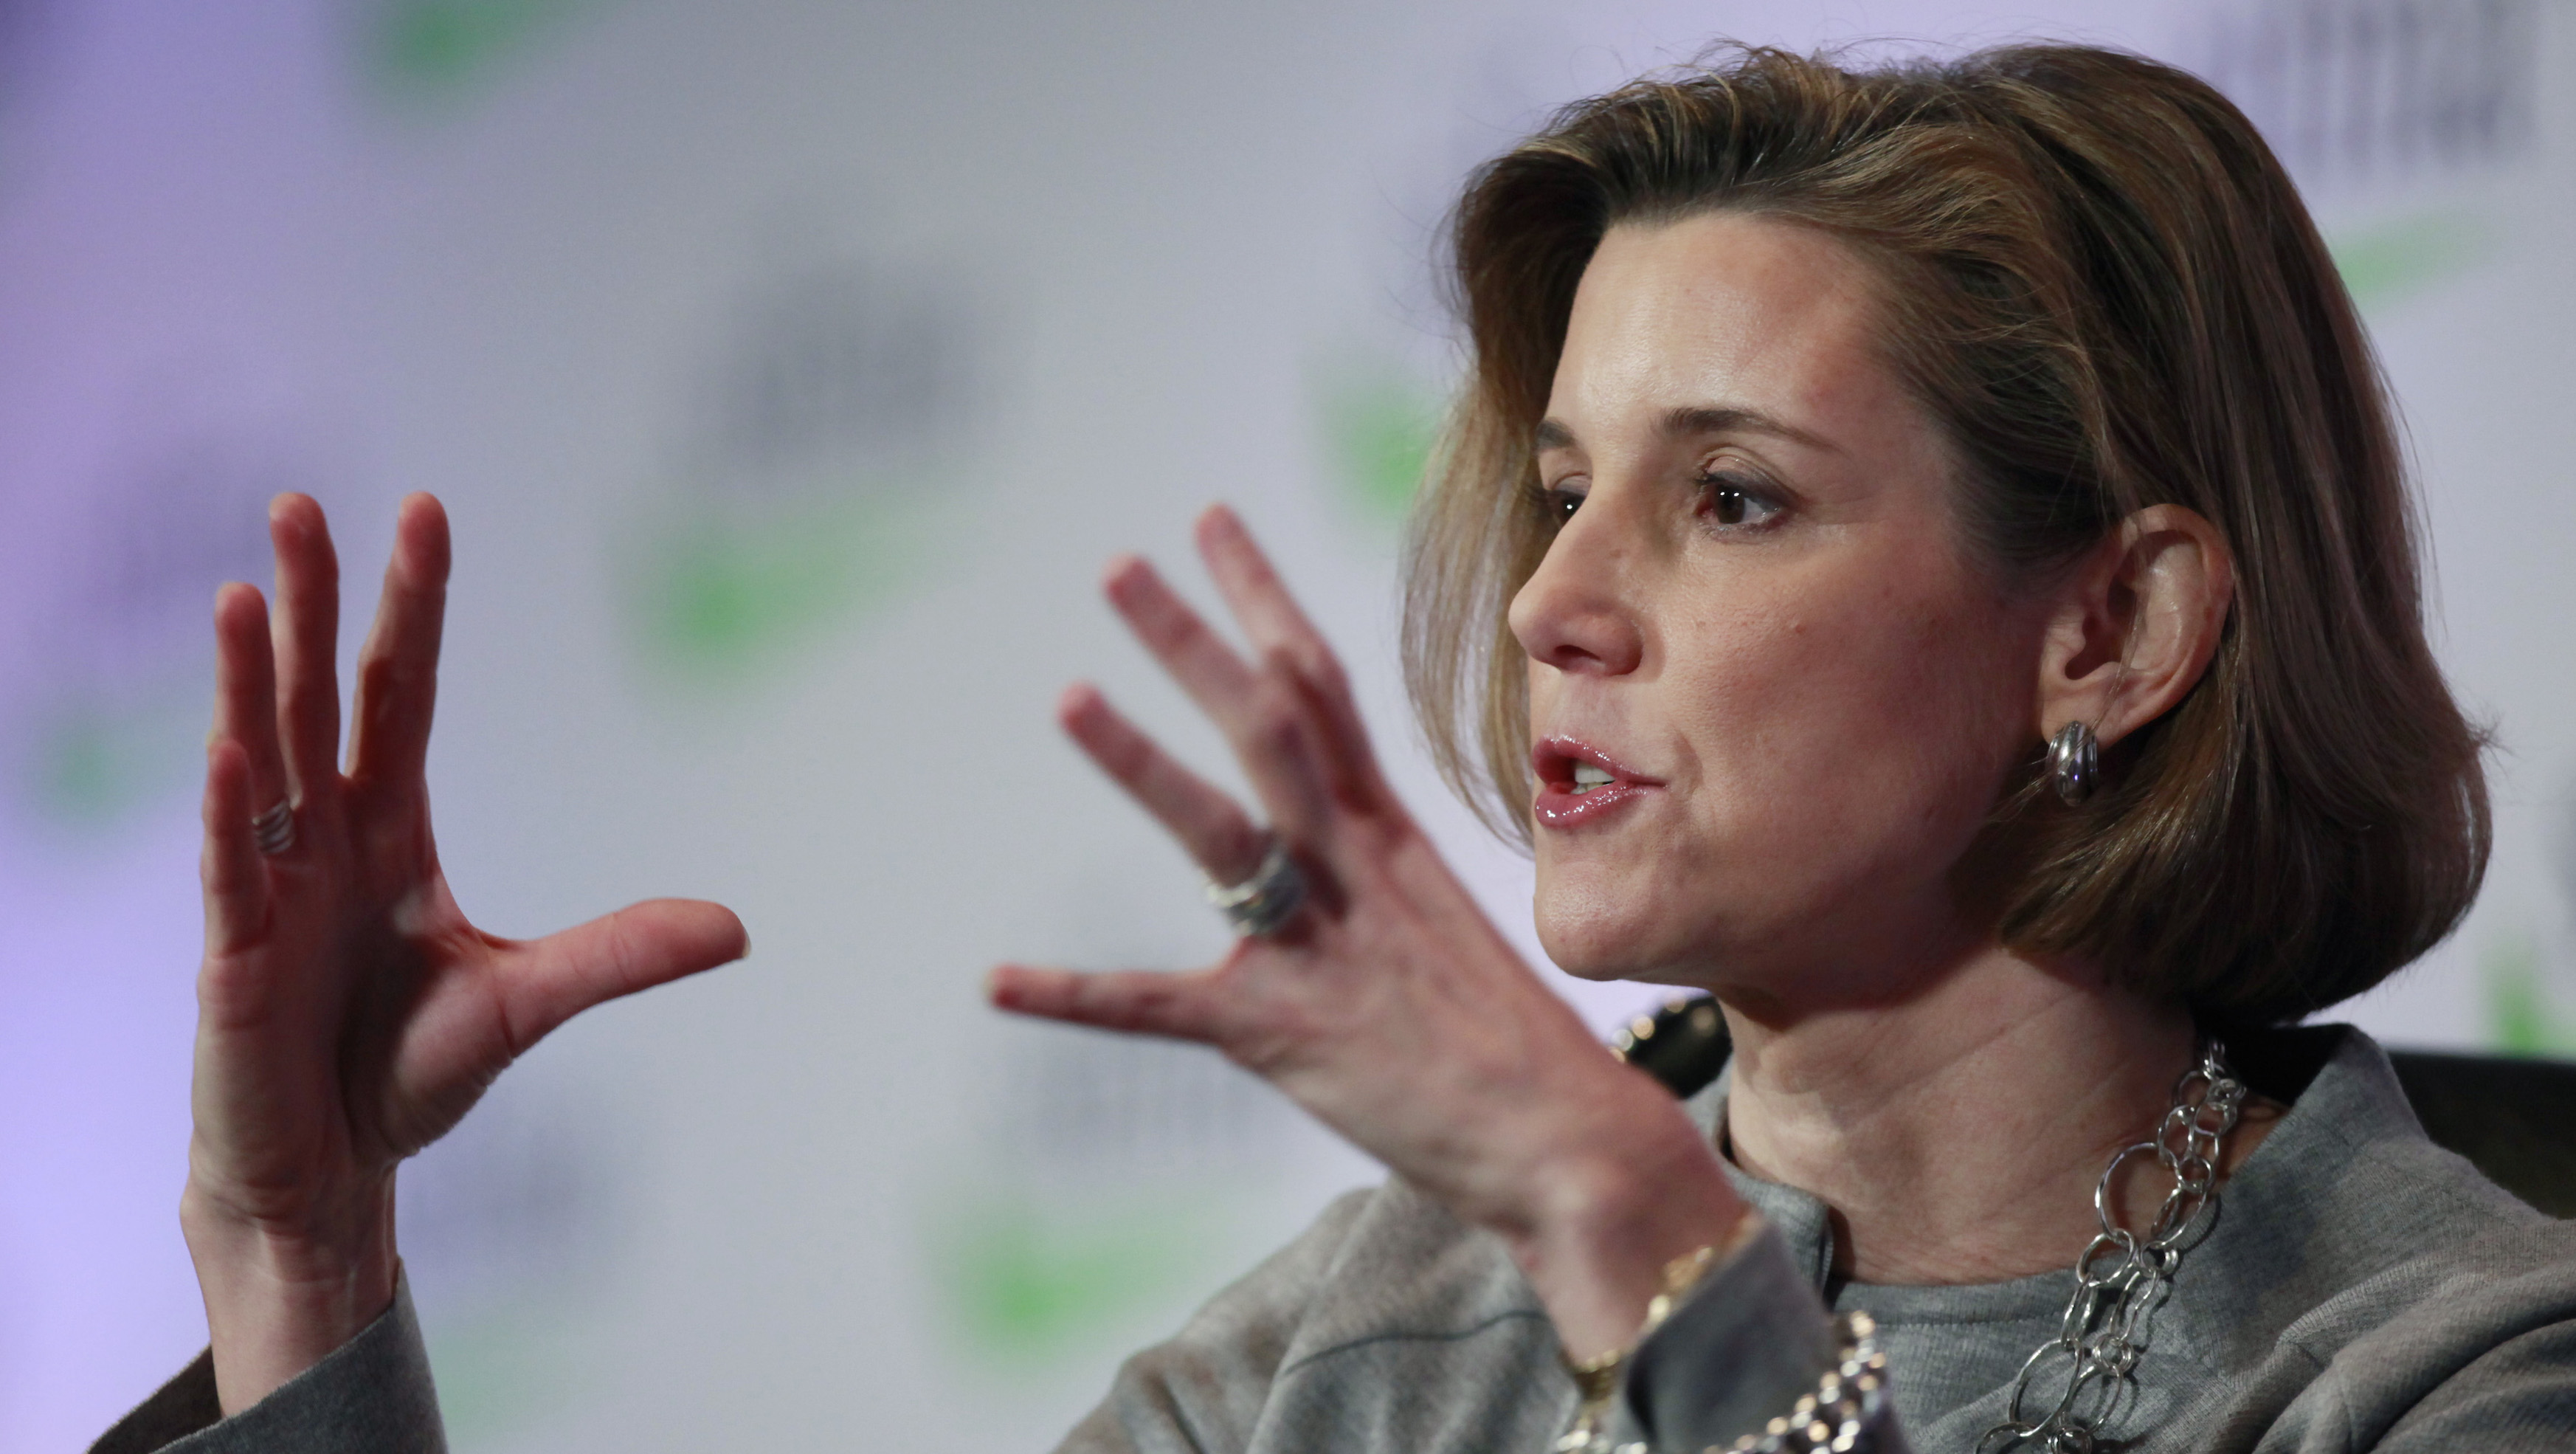 Sallie Krawcheck, former President of Global Wealth & Investment Management at the Bank of America.